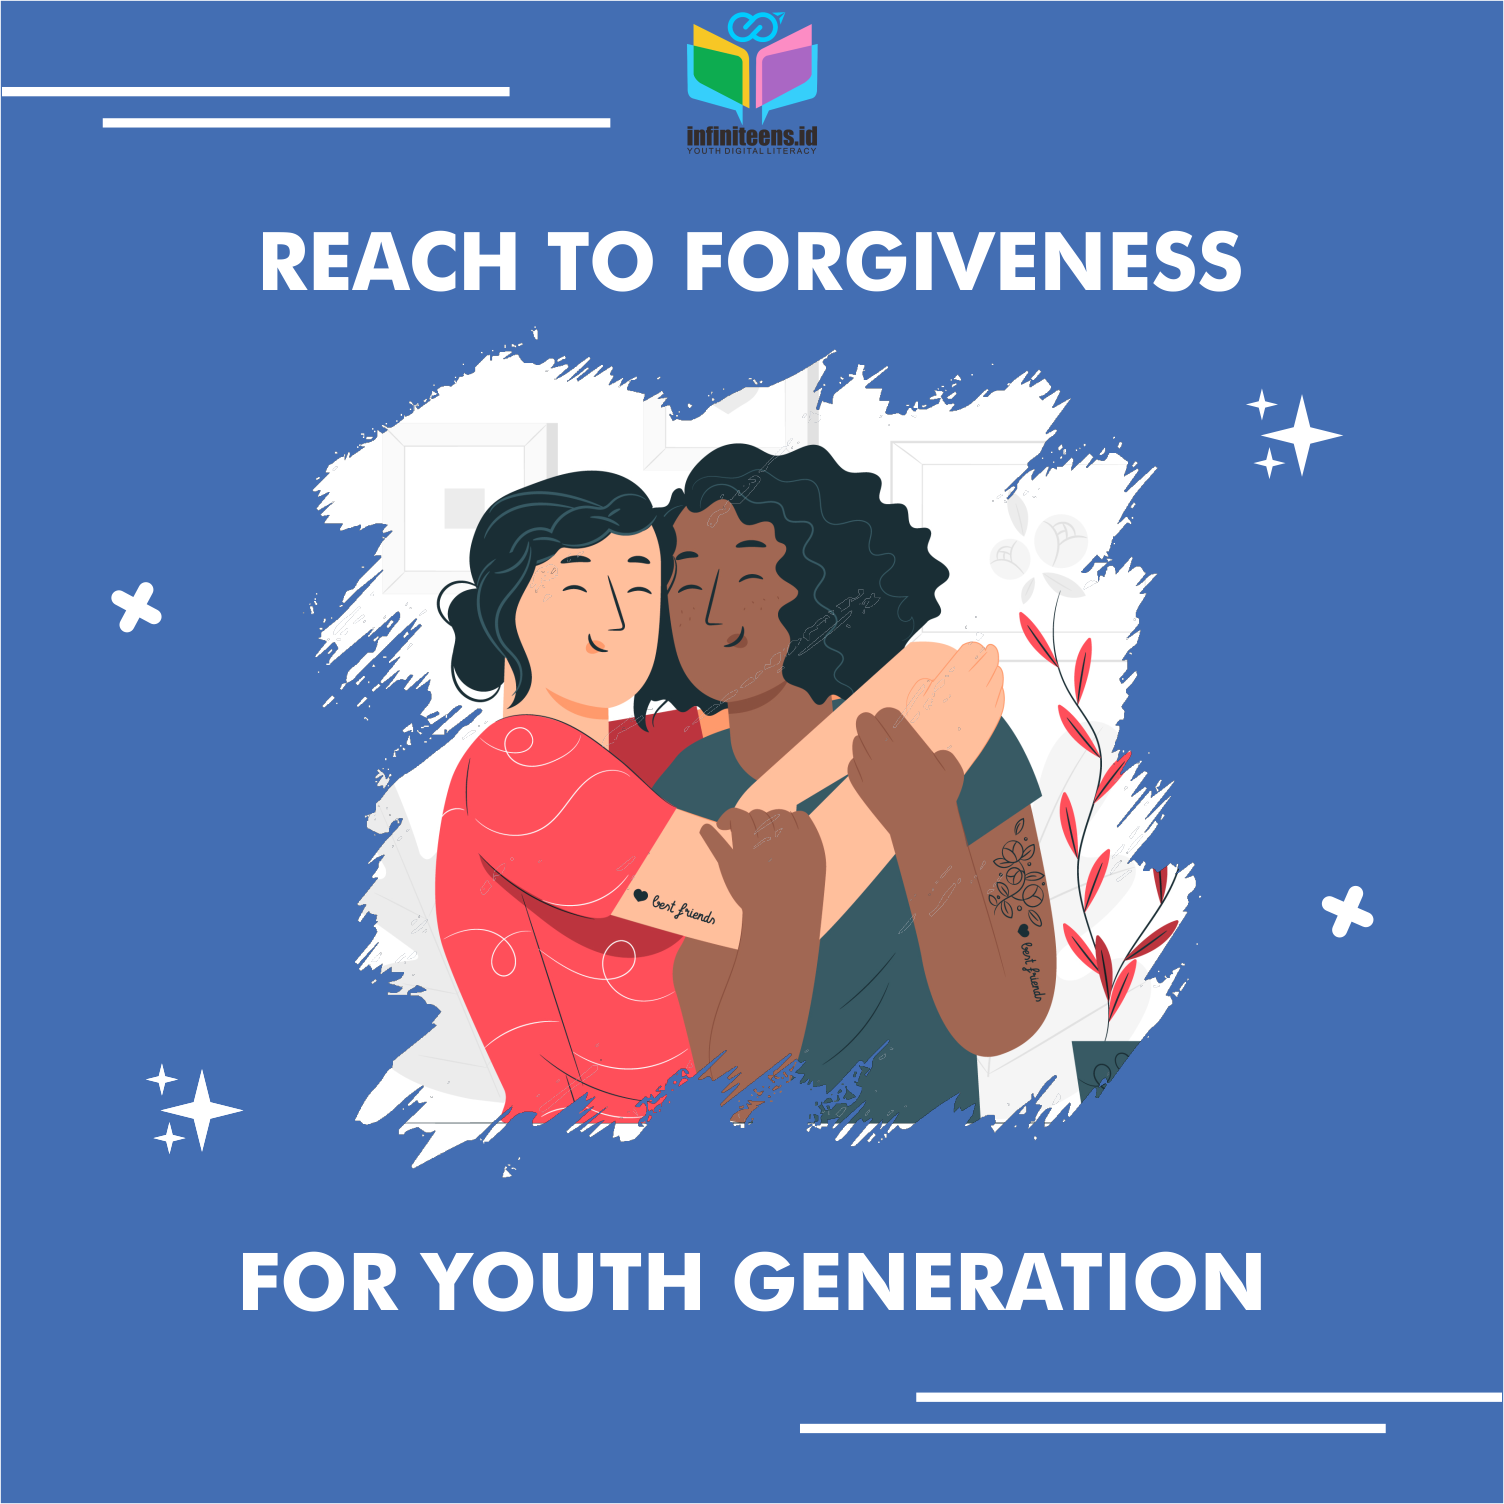 REACH TO FORGIVENESS FOR YOUTH GENERATION